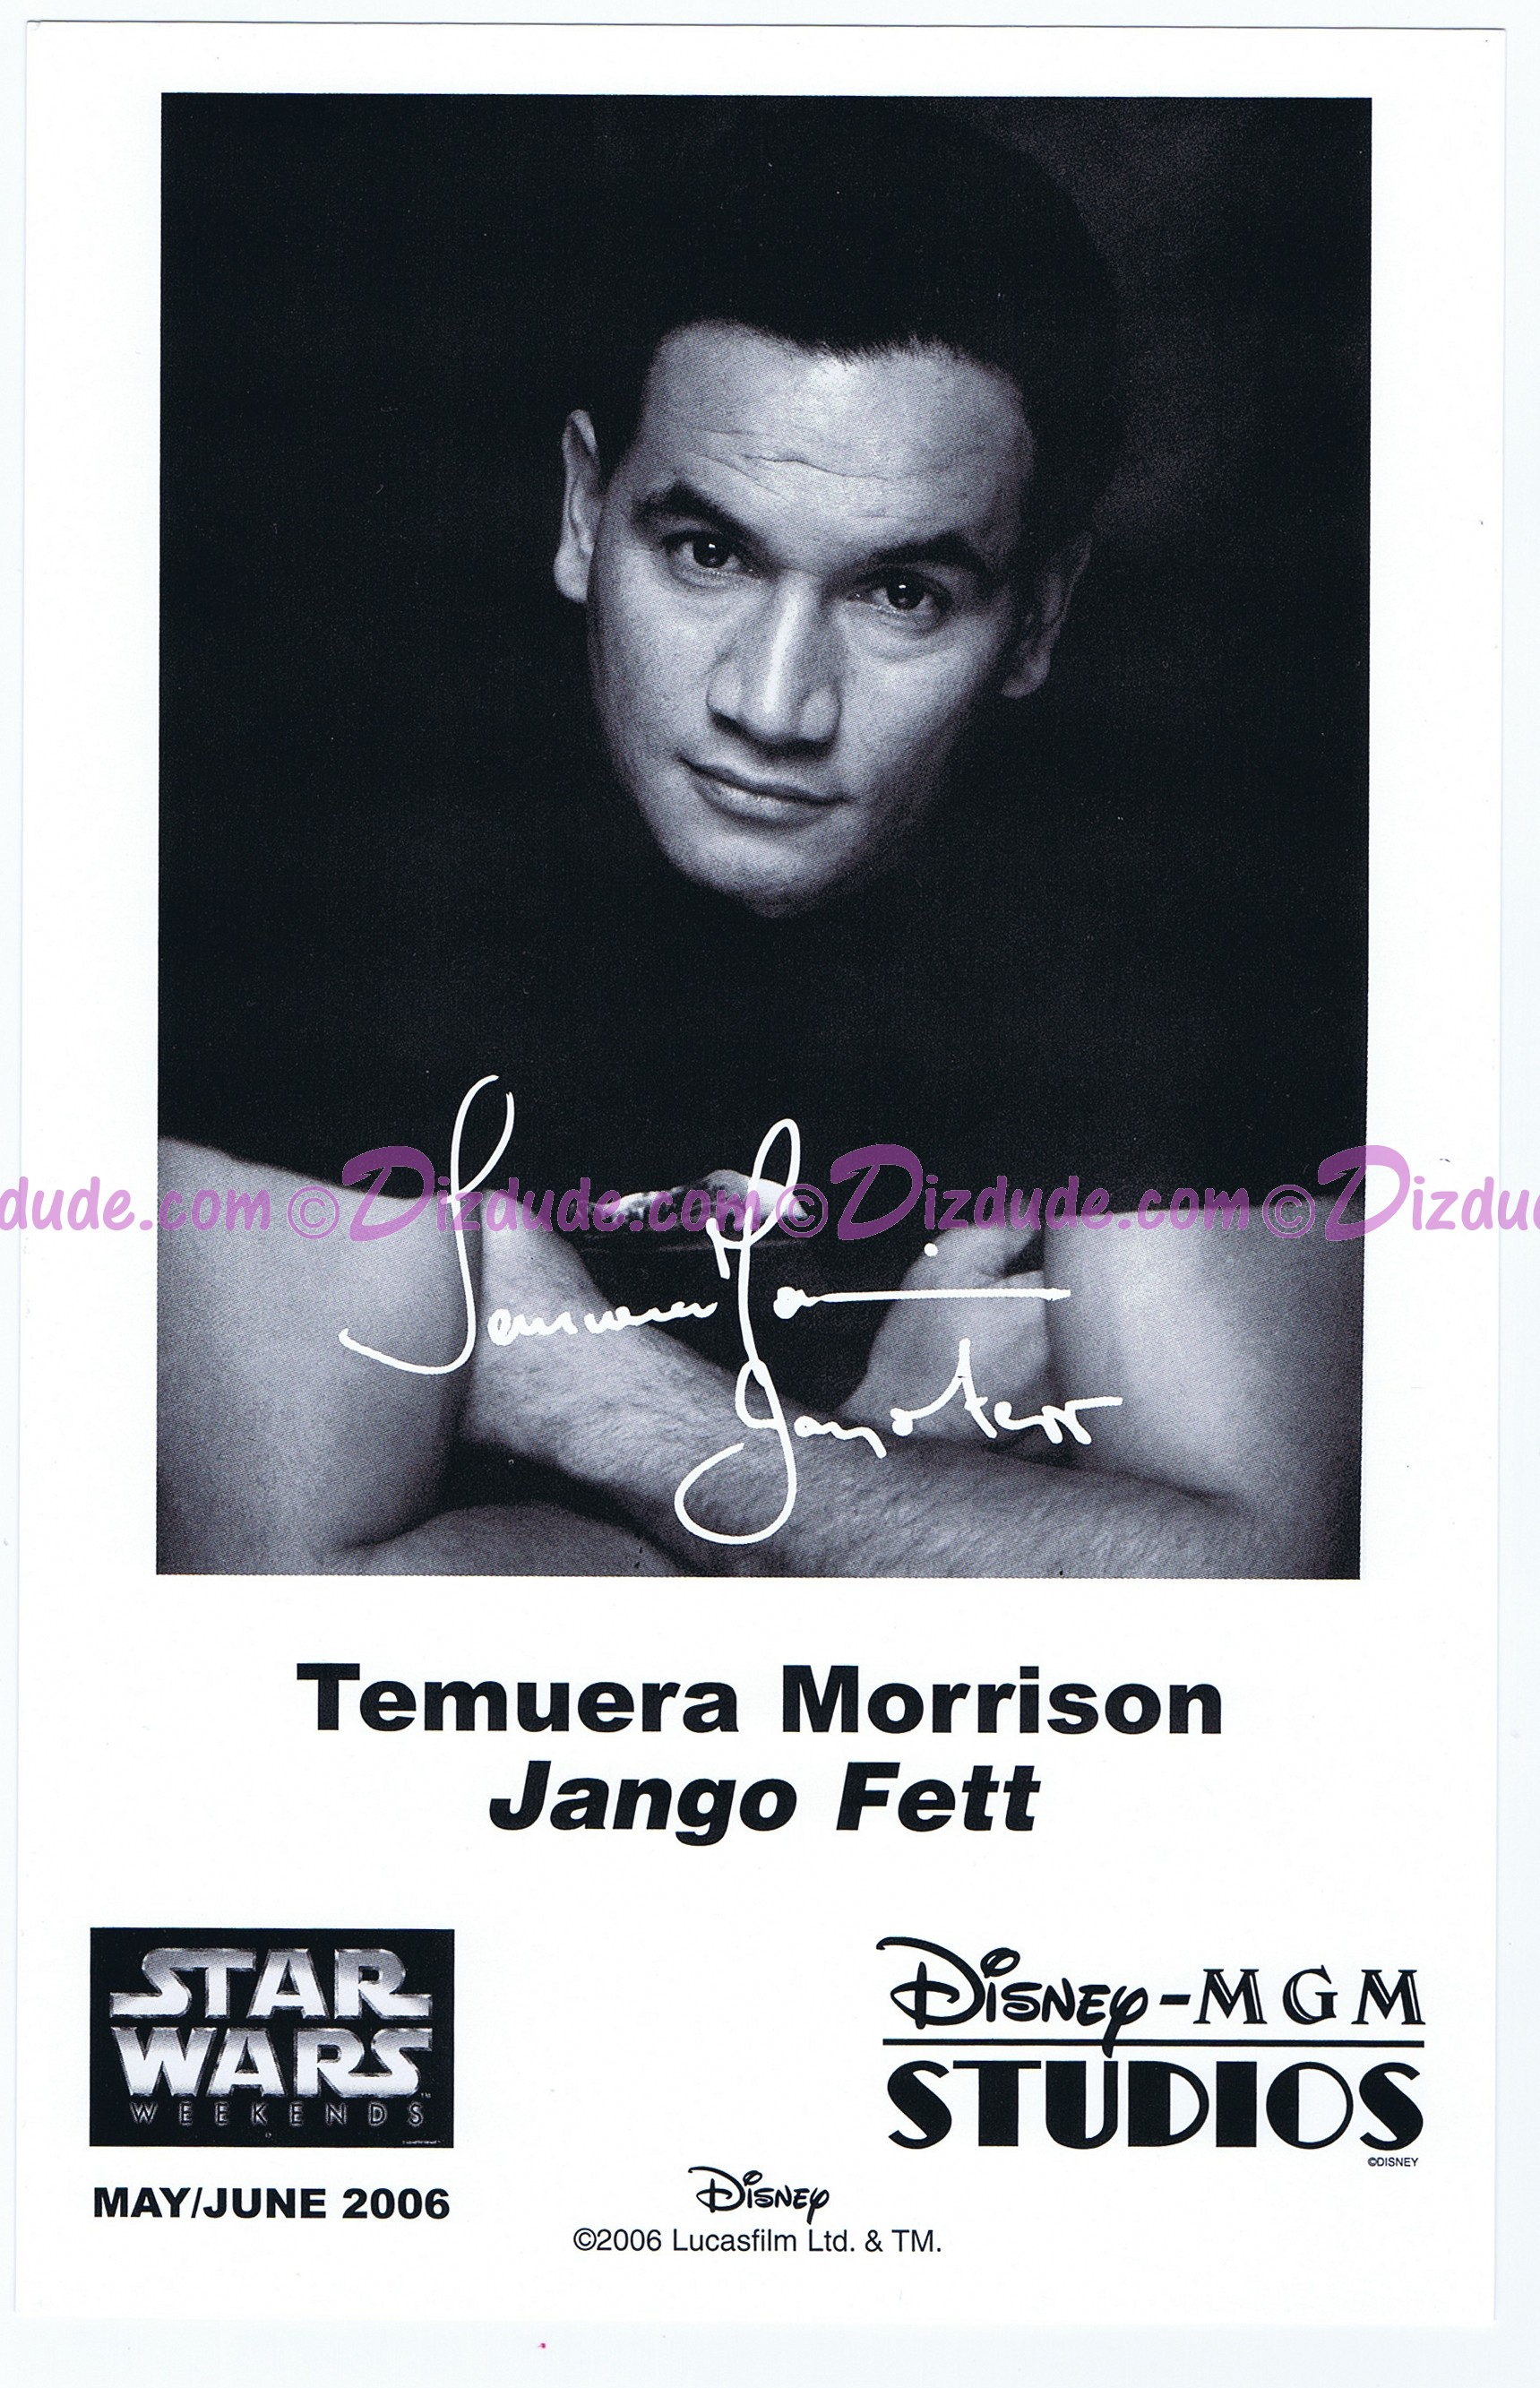 Temuera Morrison Who Played Jango Fett Presigned Official Star Wars Weekends 2006 Celebrity Collector Photo © Dizdude.com